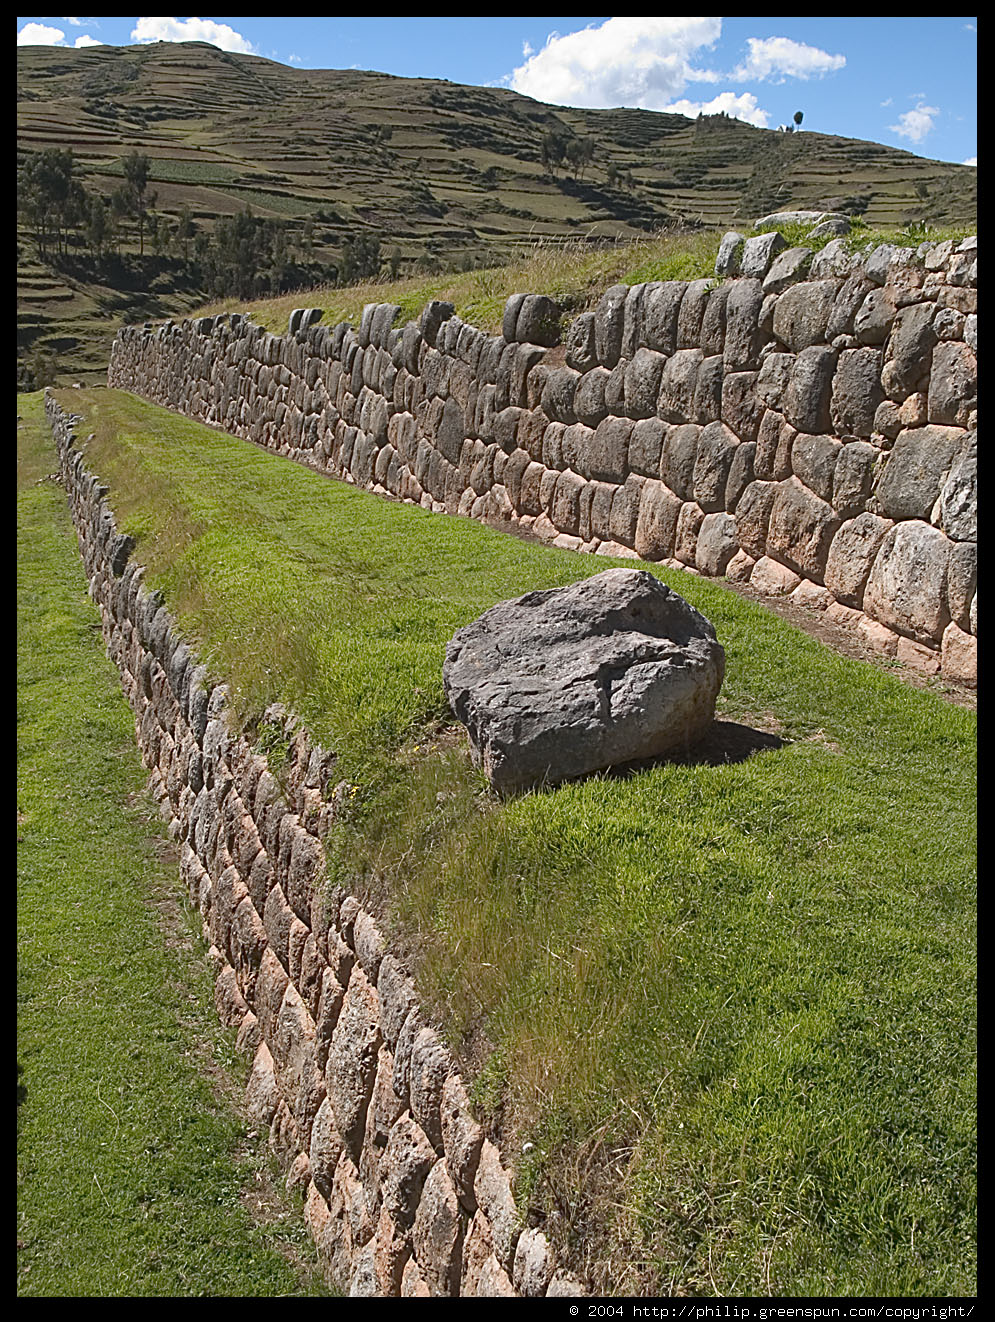 Photograph by philip greenspun chinchero inca terraces 2 for The terraces 2